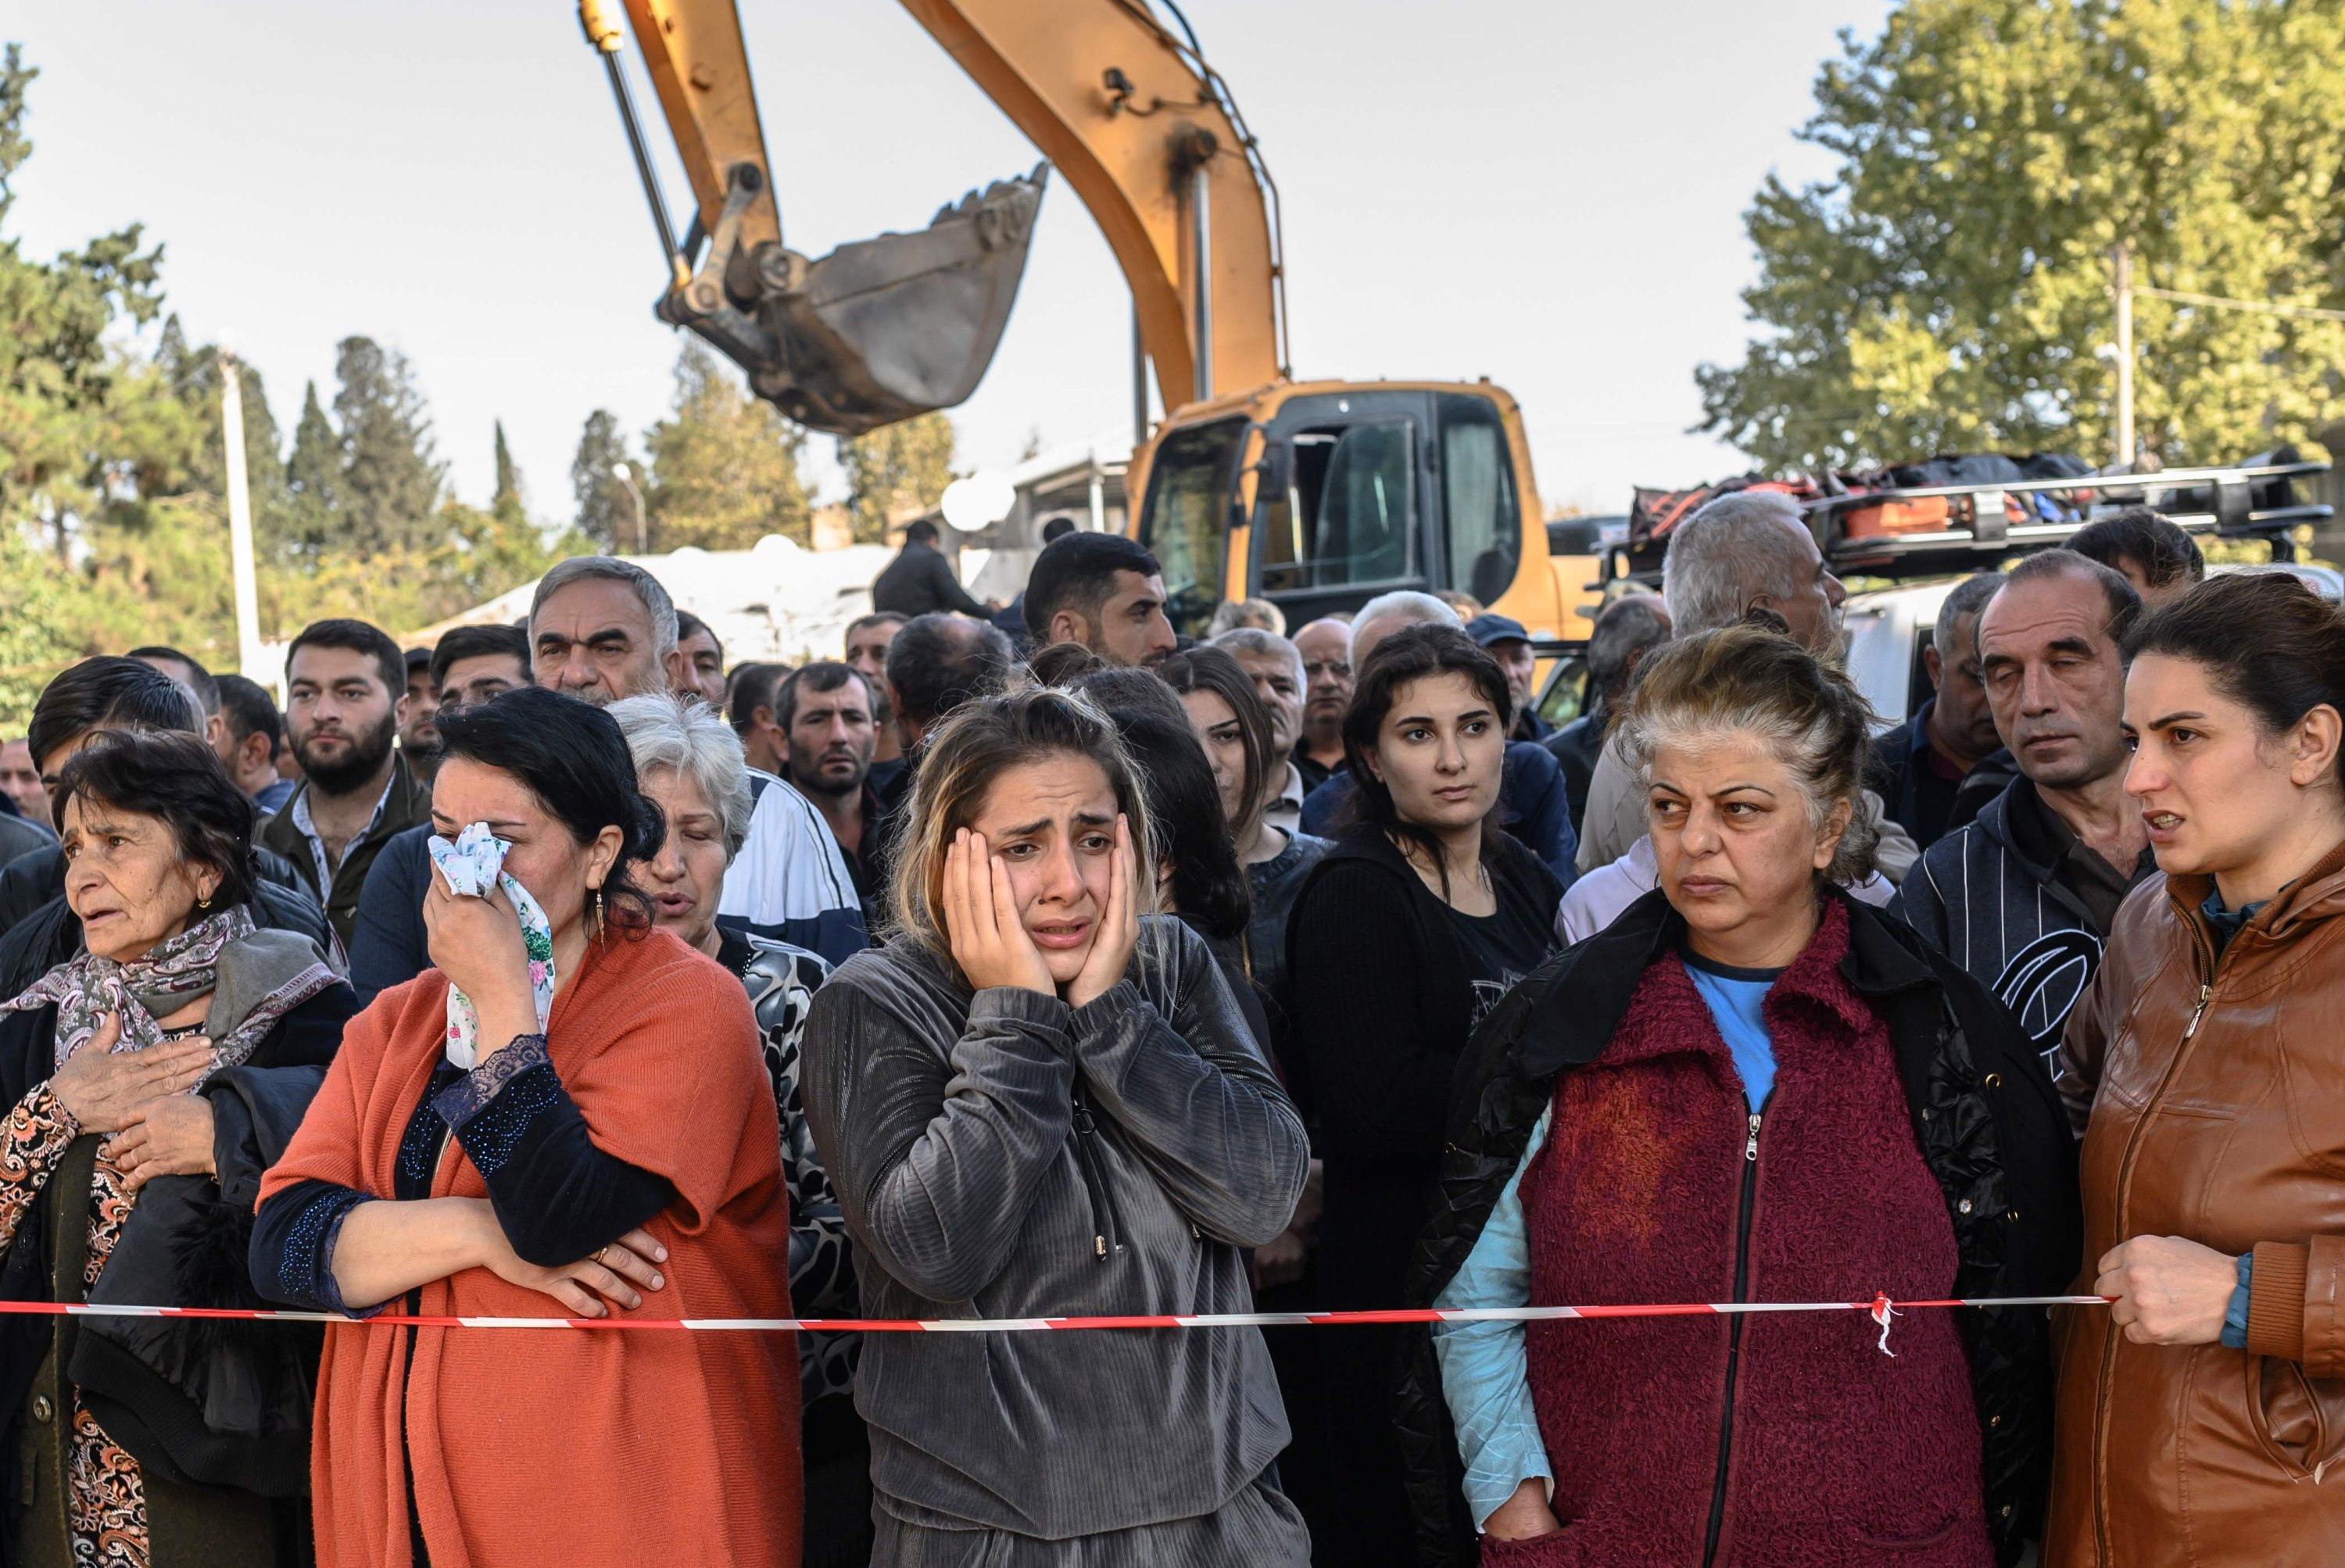 Azerbaijani people stand behind caution tape as rescuers search for victims or survivors at the blast site hit by an Armenian rocket in the city of Ganja, Azerbaijan, on Oct.11, 2020. (AFP)